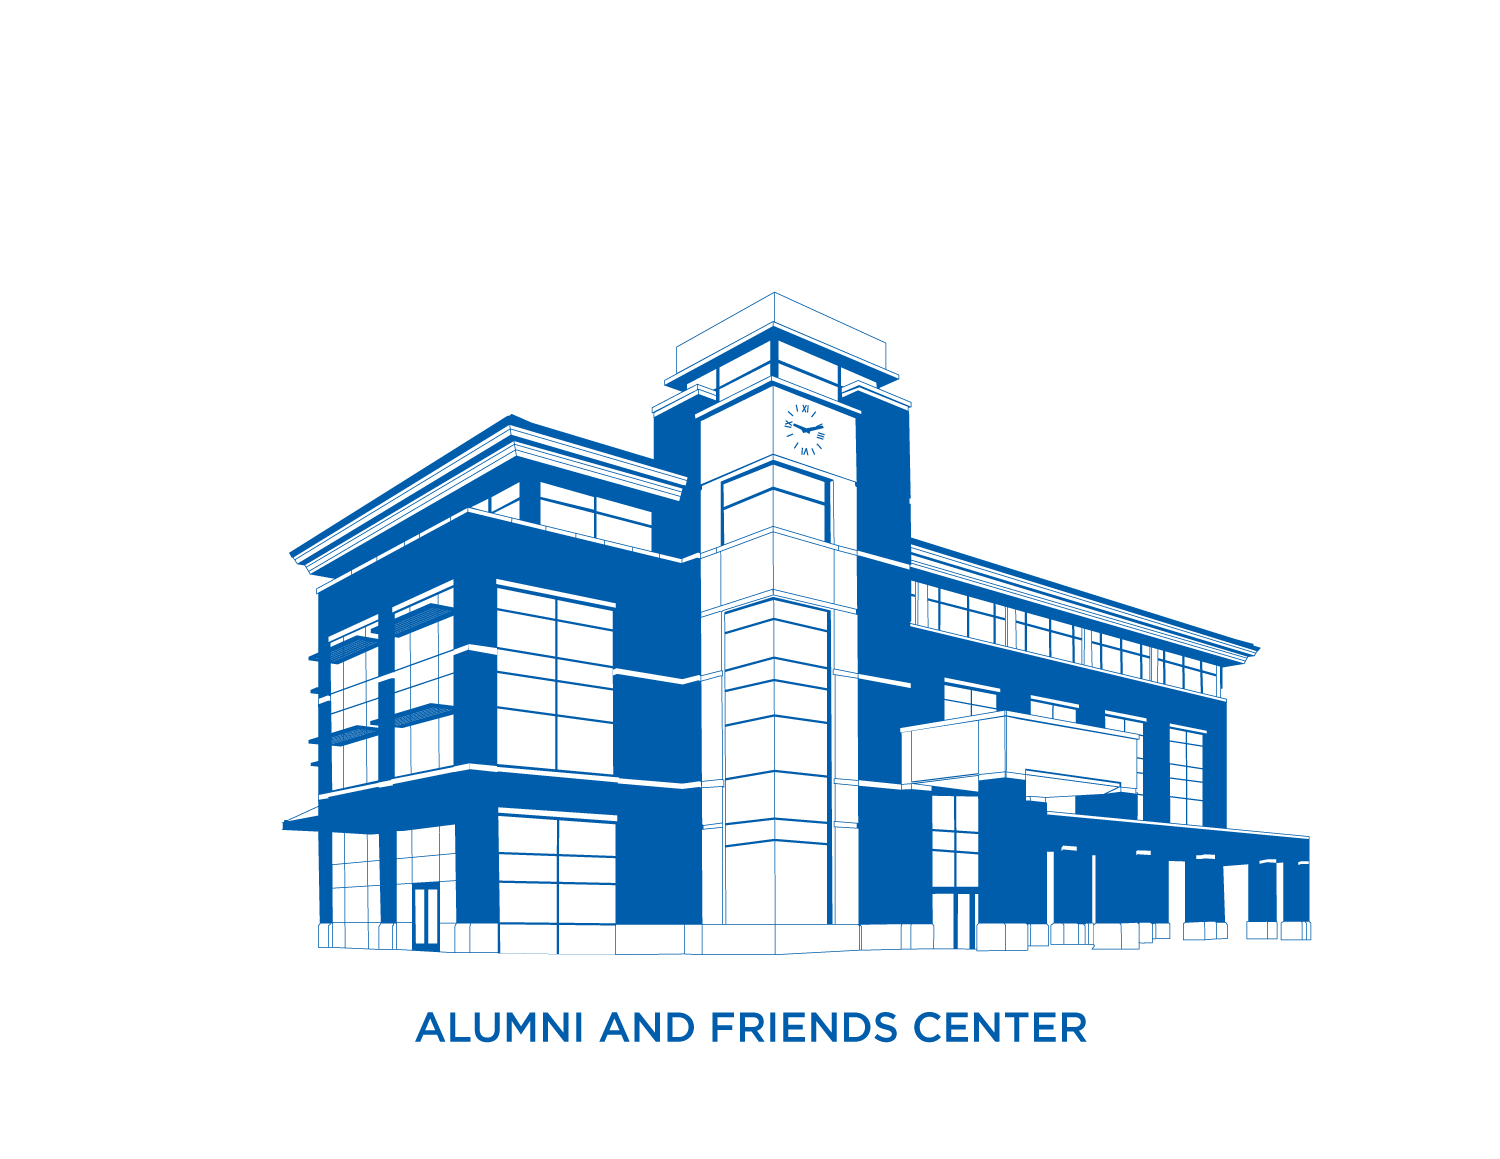 Alumni and Friends Center Rendering